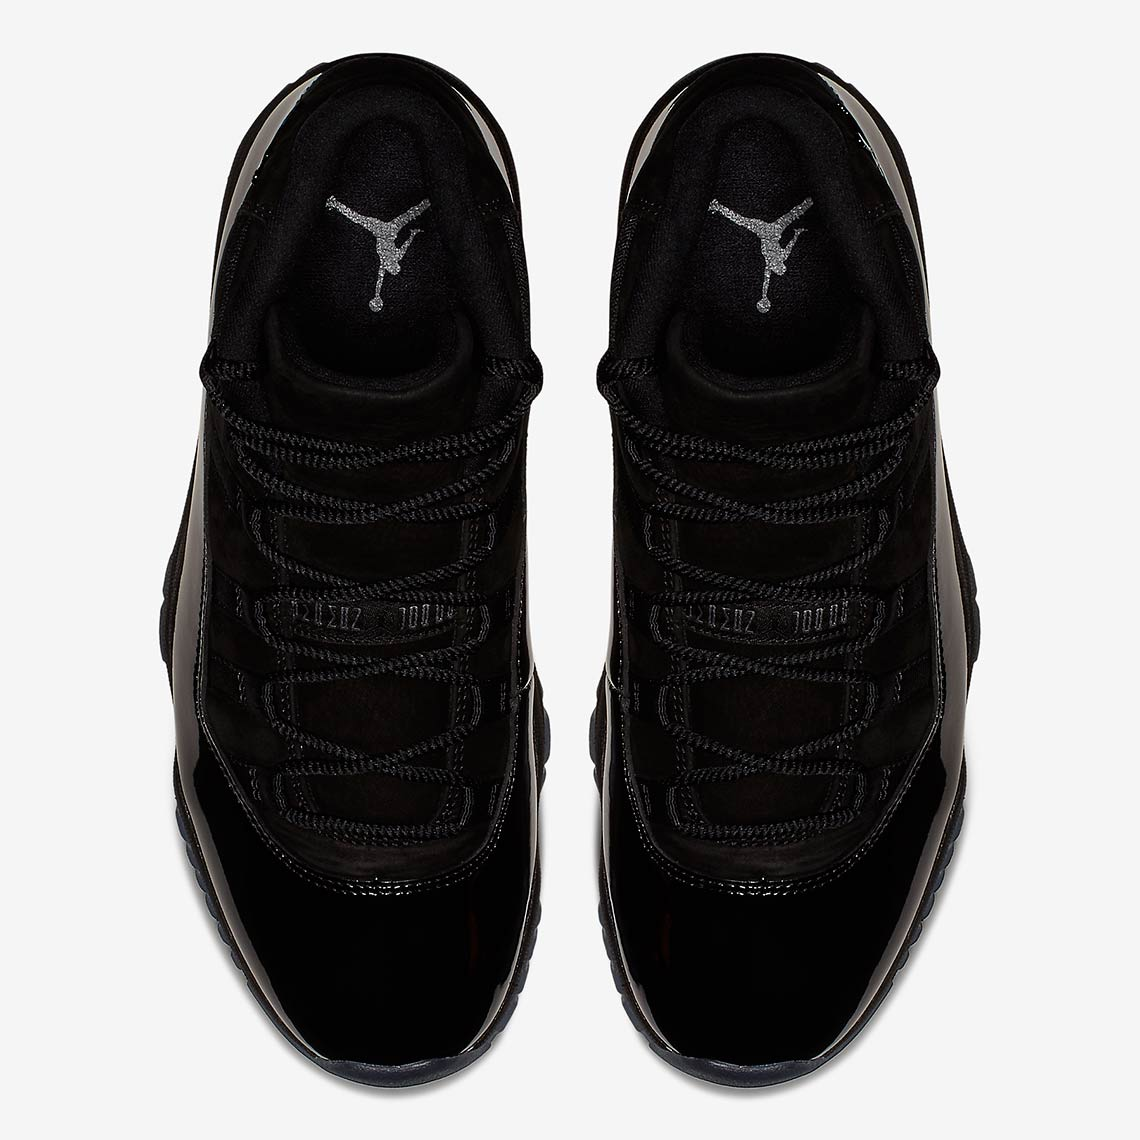 Jordan 11 Cap And Gown Nike SNKRS Release Info | SneakerNews.com